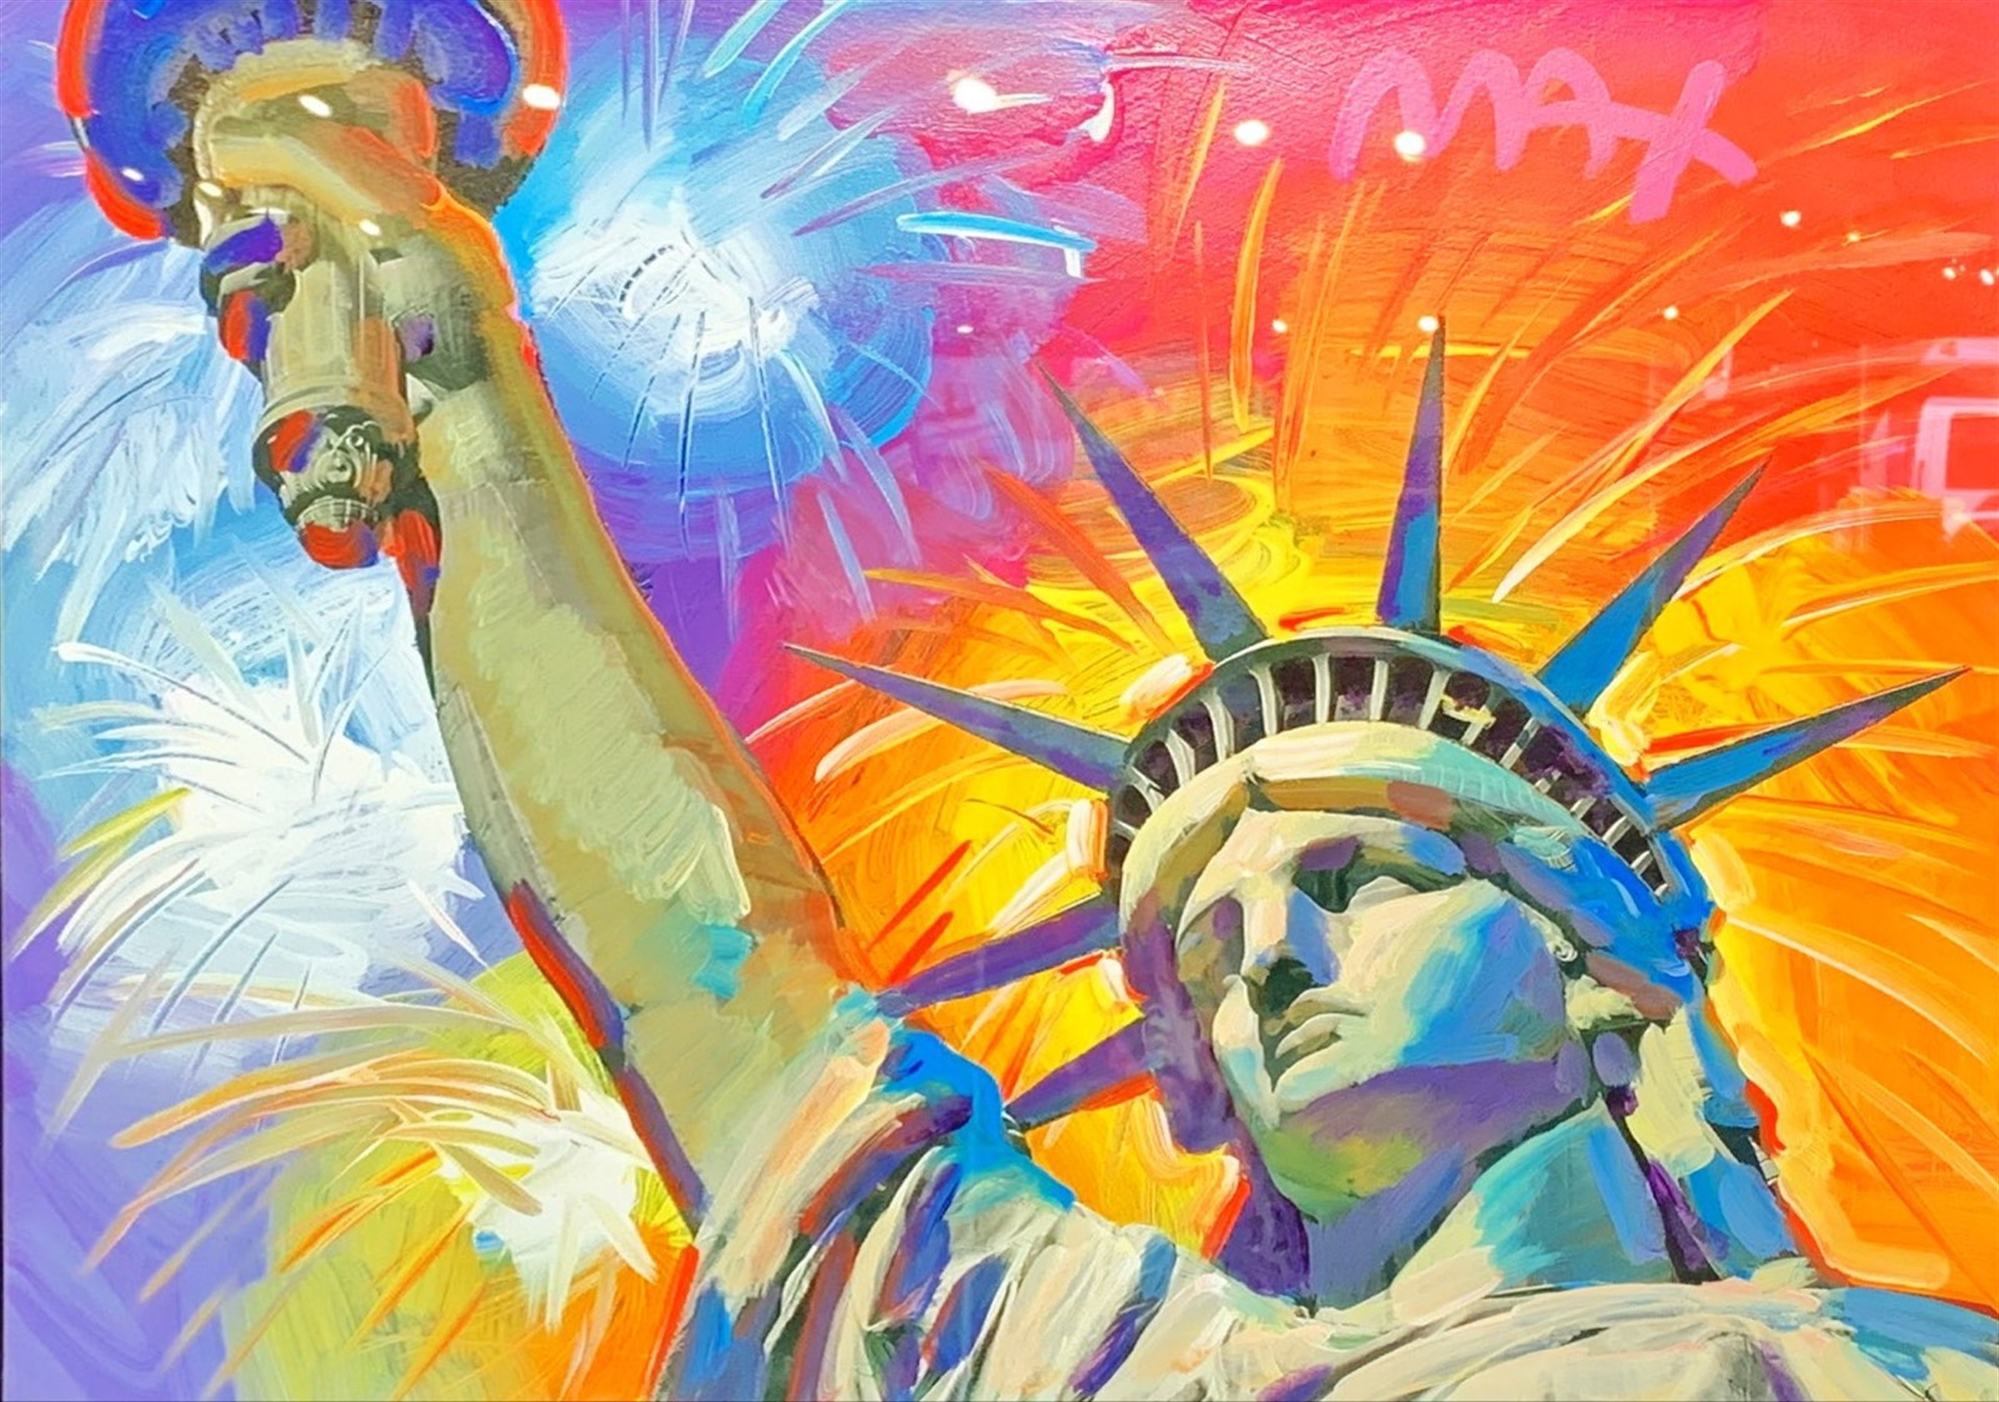 Statue of Liberty - Fireworks by Peter Max